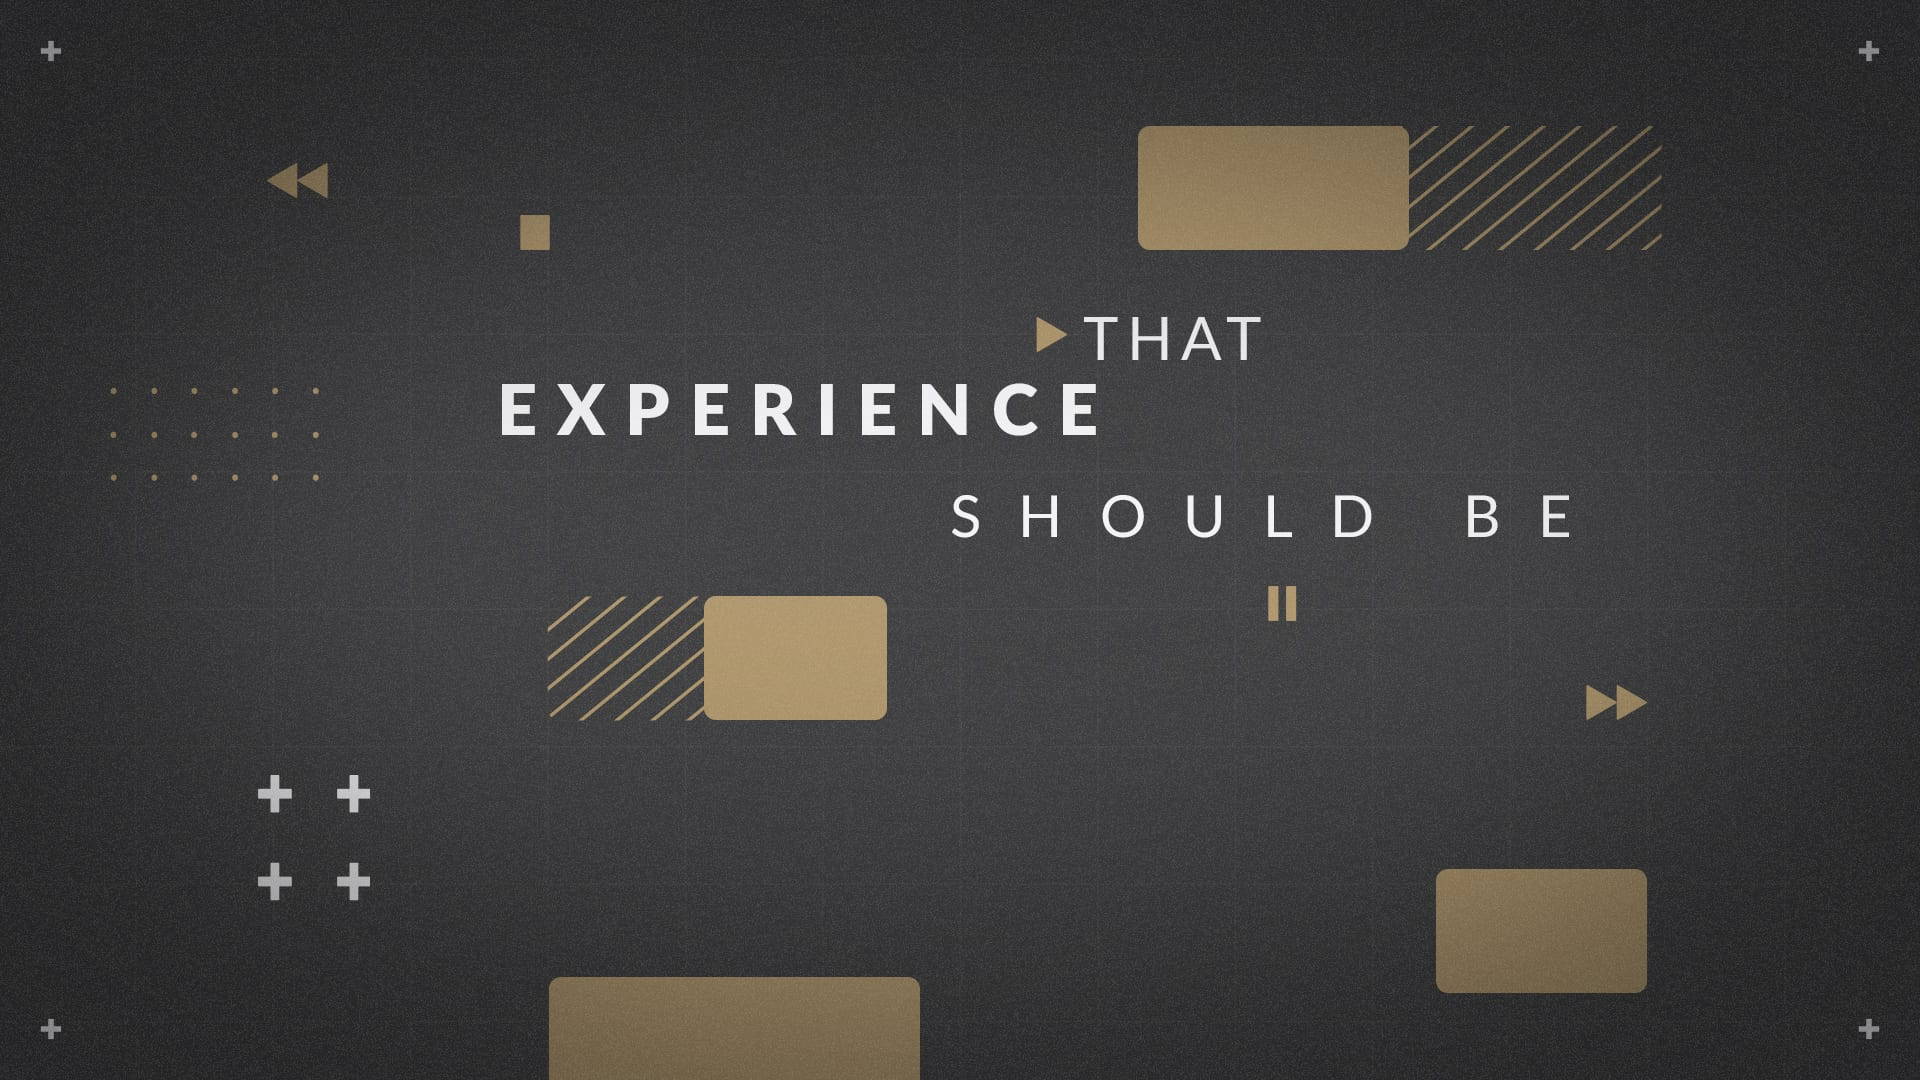 B17 – We think That experiences should be_